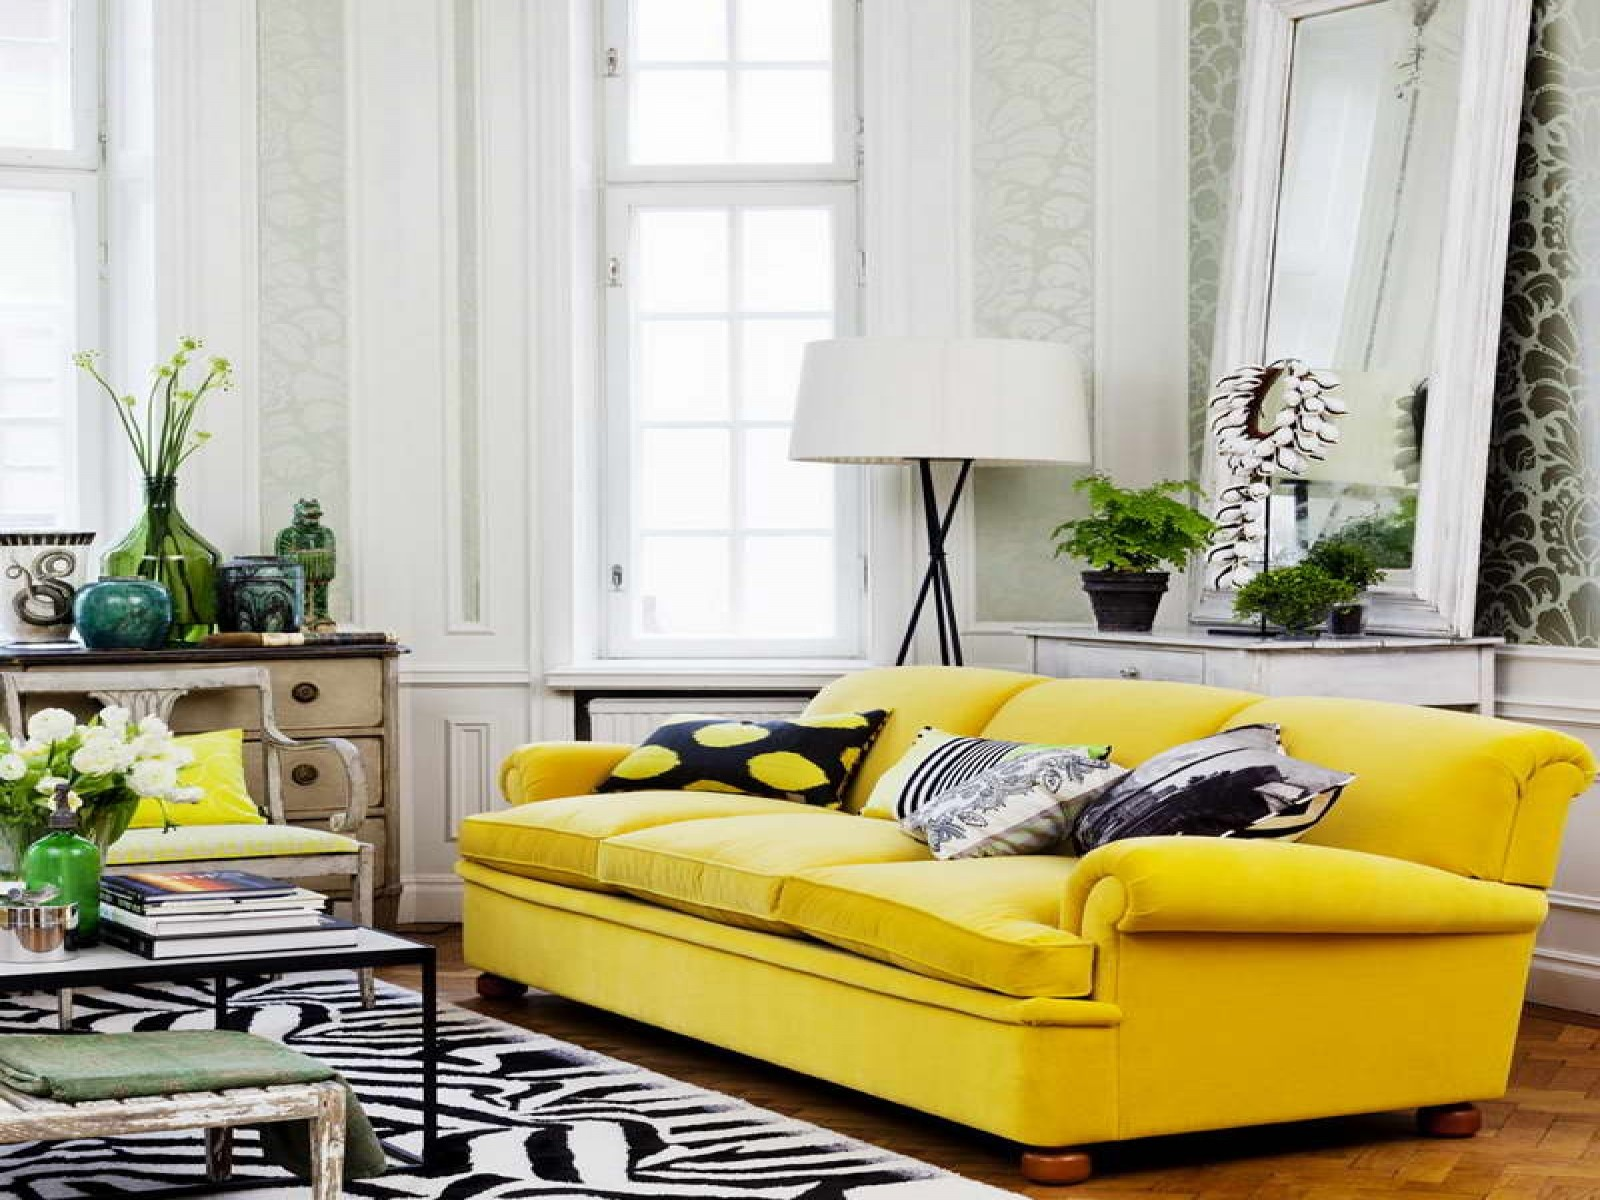 living-room-fine-looking-white-fireplace-mantle-and-yellow-velvet-sectional-couch-feat-rounded-coffee-table-livingroom-inspiration-fabulous-midcentury-style-as-well-as-coffee-table-sale-plus-low-coffe